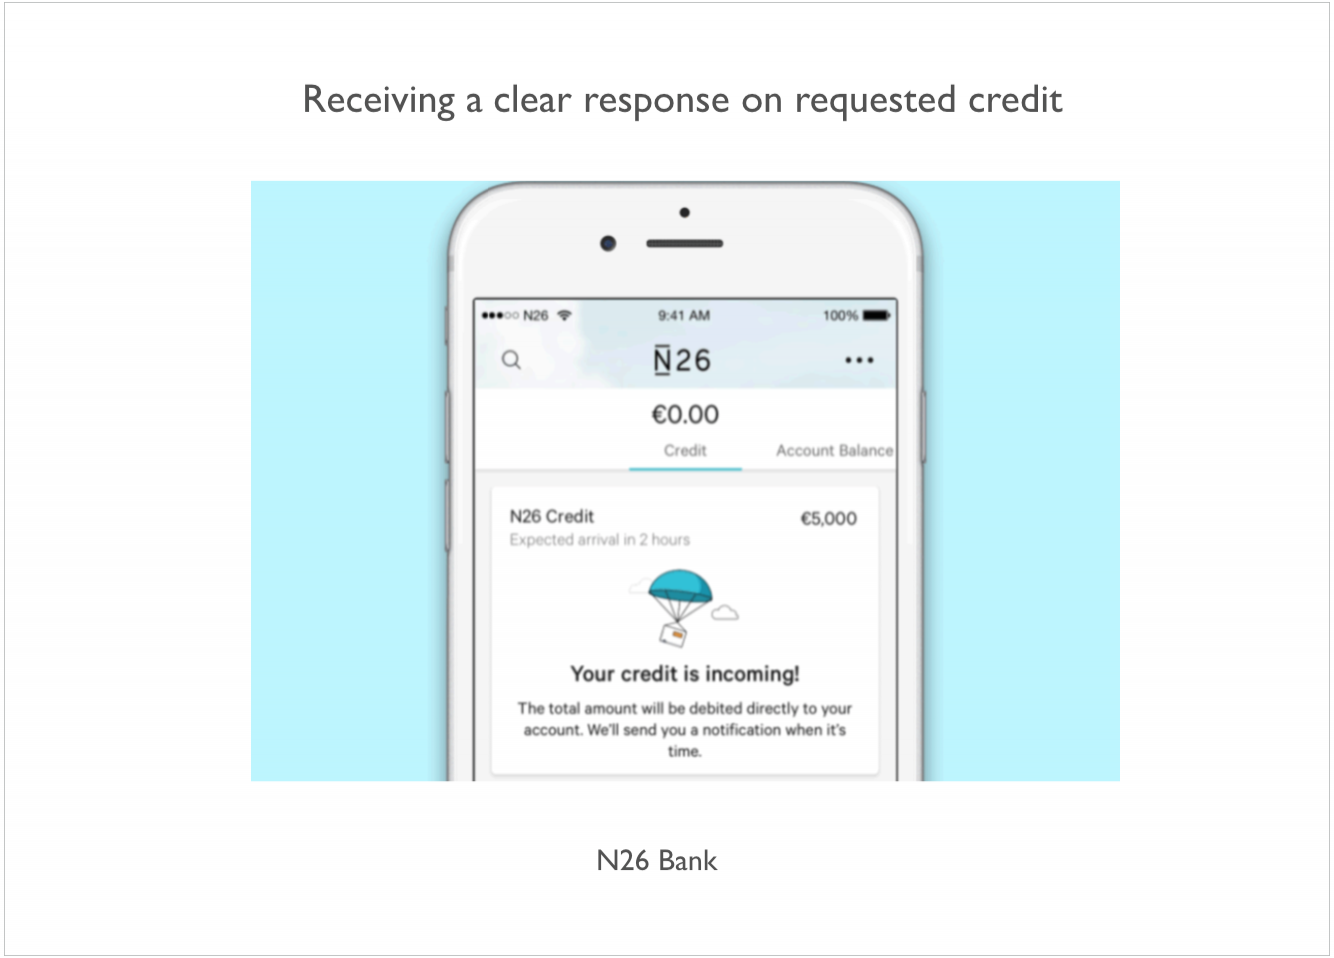 ux-design-fintech-banking-digital-credit-request-response